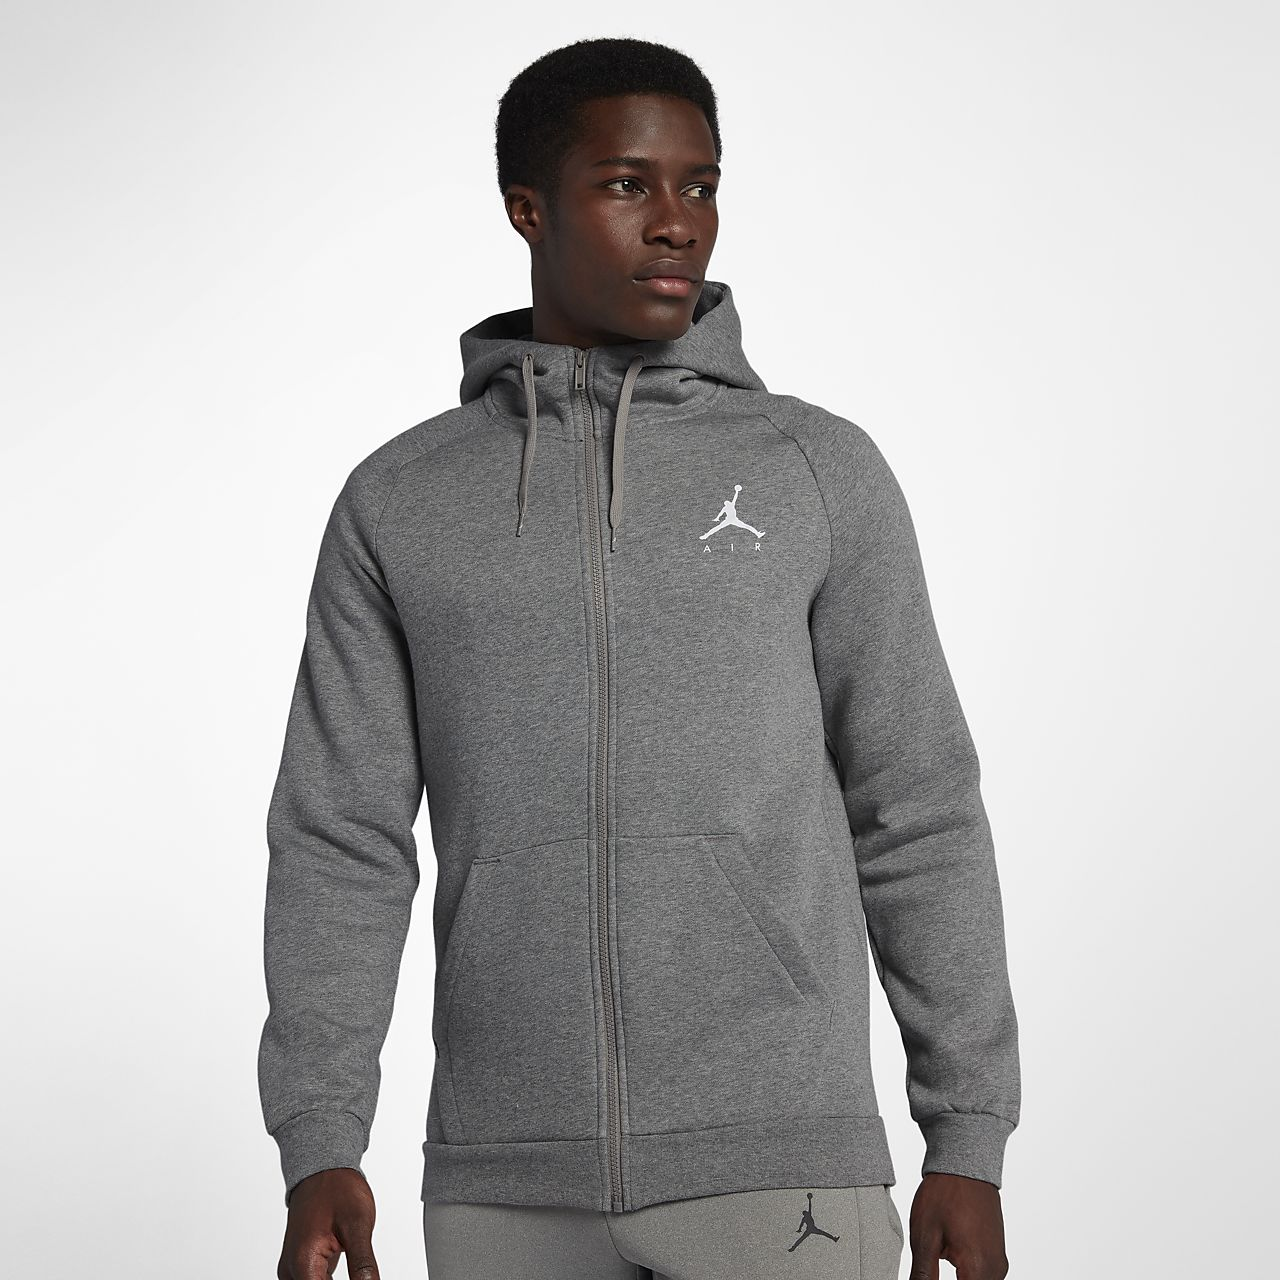 2ffec8cc885 Jordan Jumpman Men s Fleece Full-Zip Hoodie. Nike.com CA